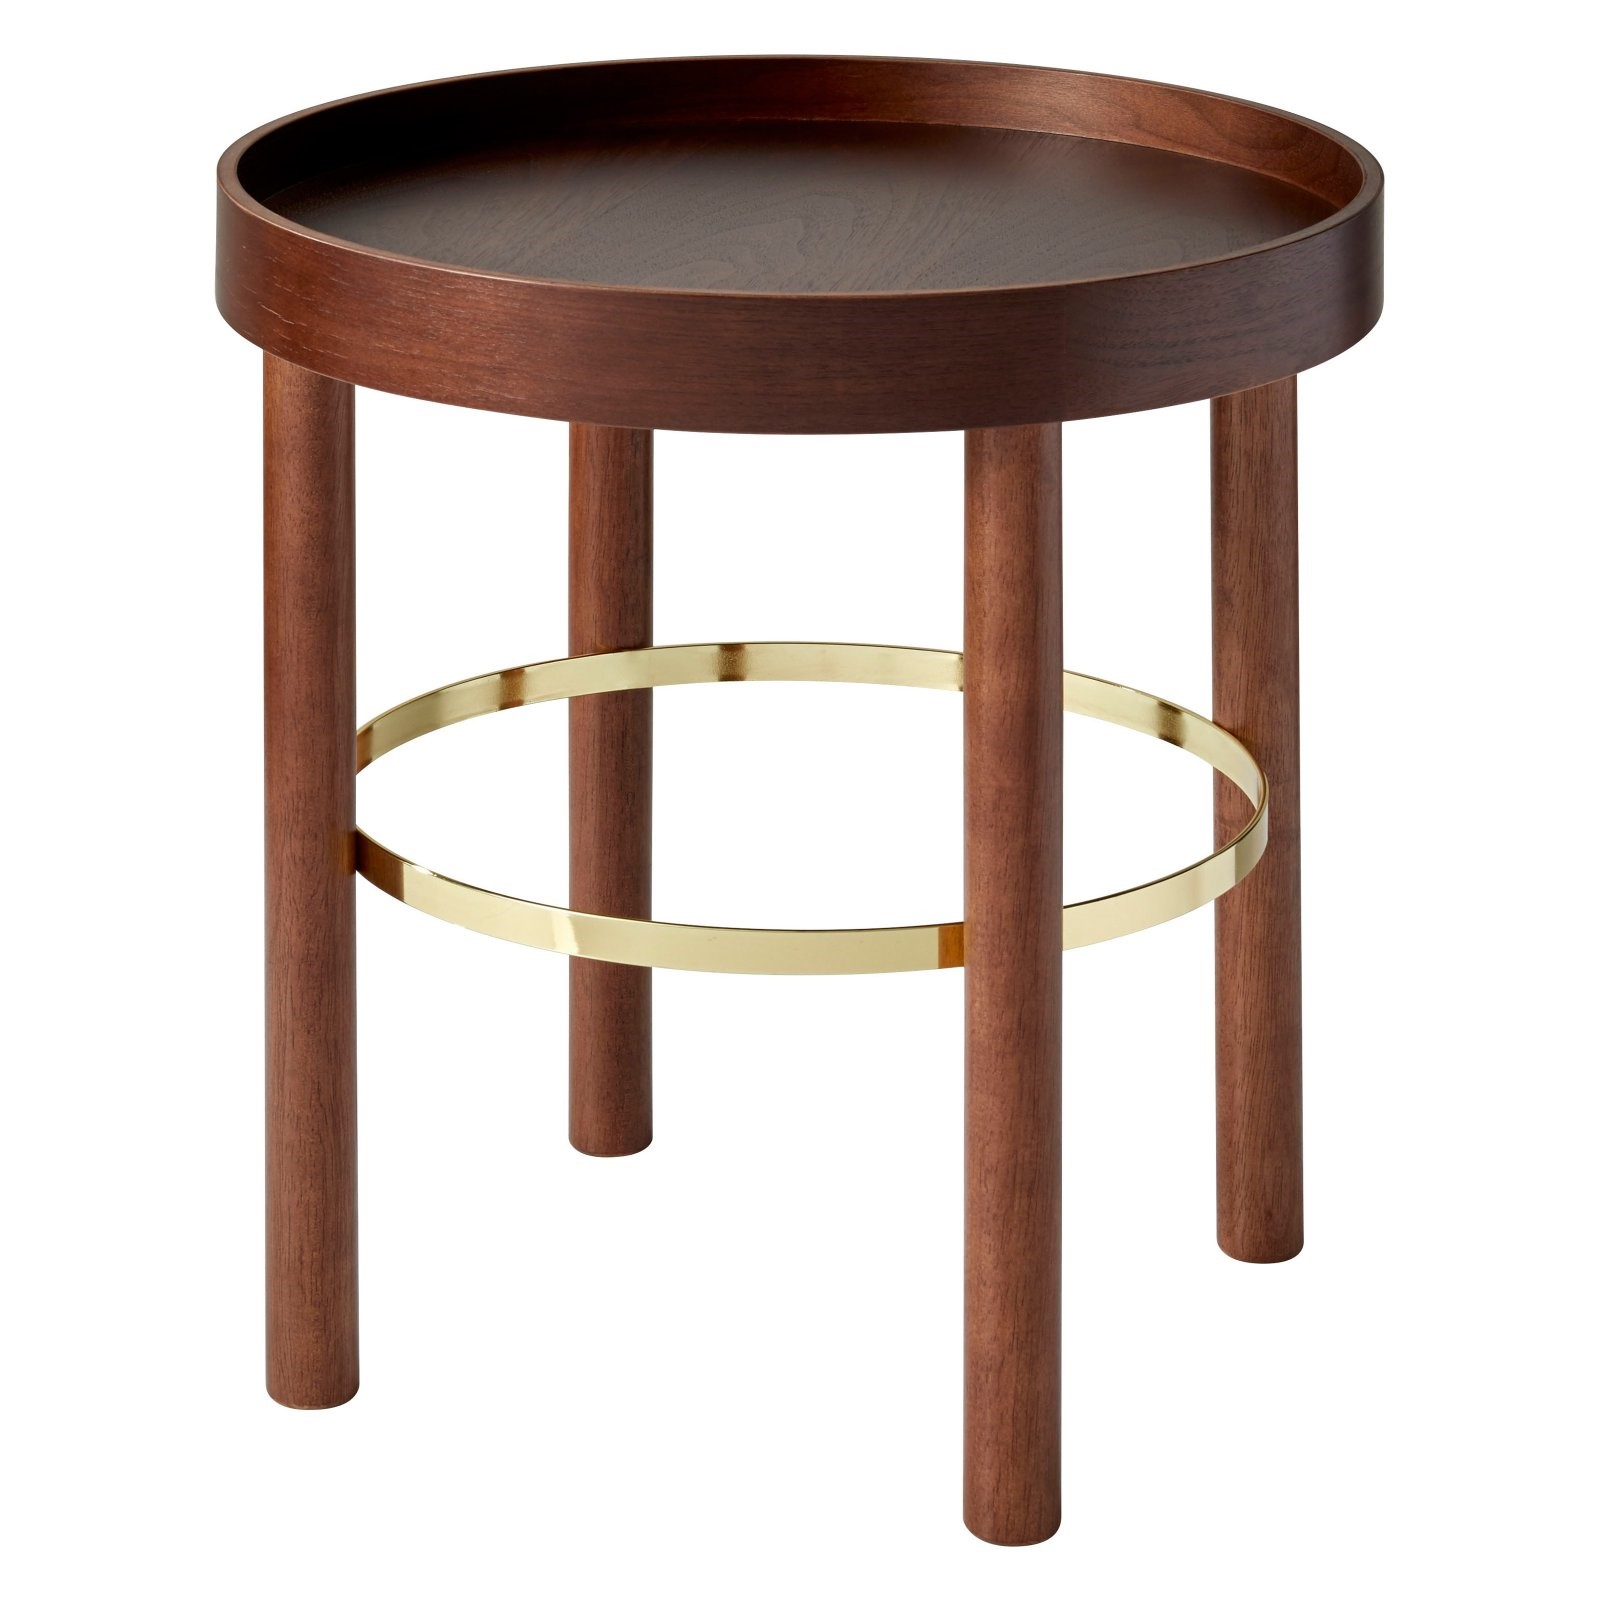 Adesso Montgomery Round End Table by Adesso